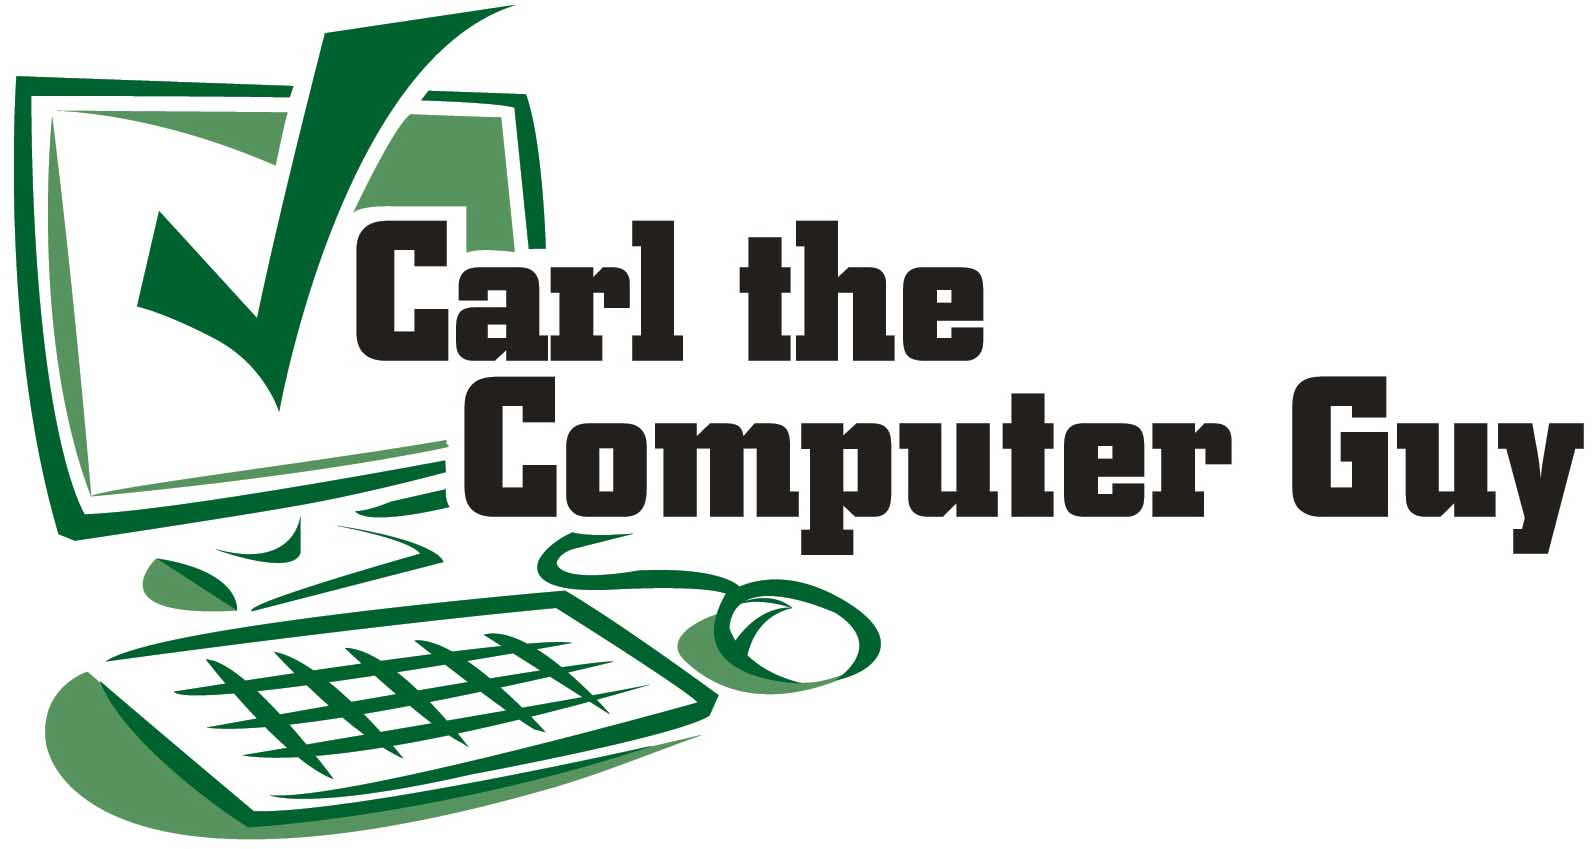 Carl The Computer Guy